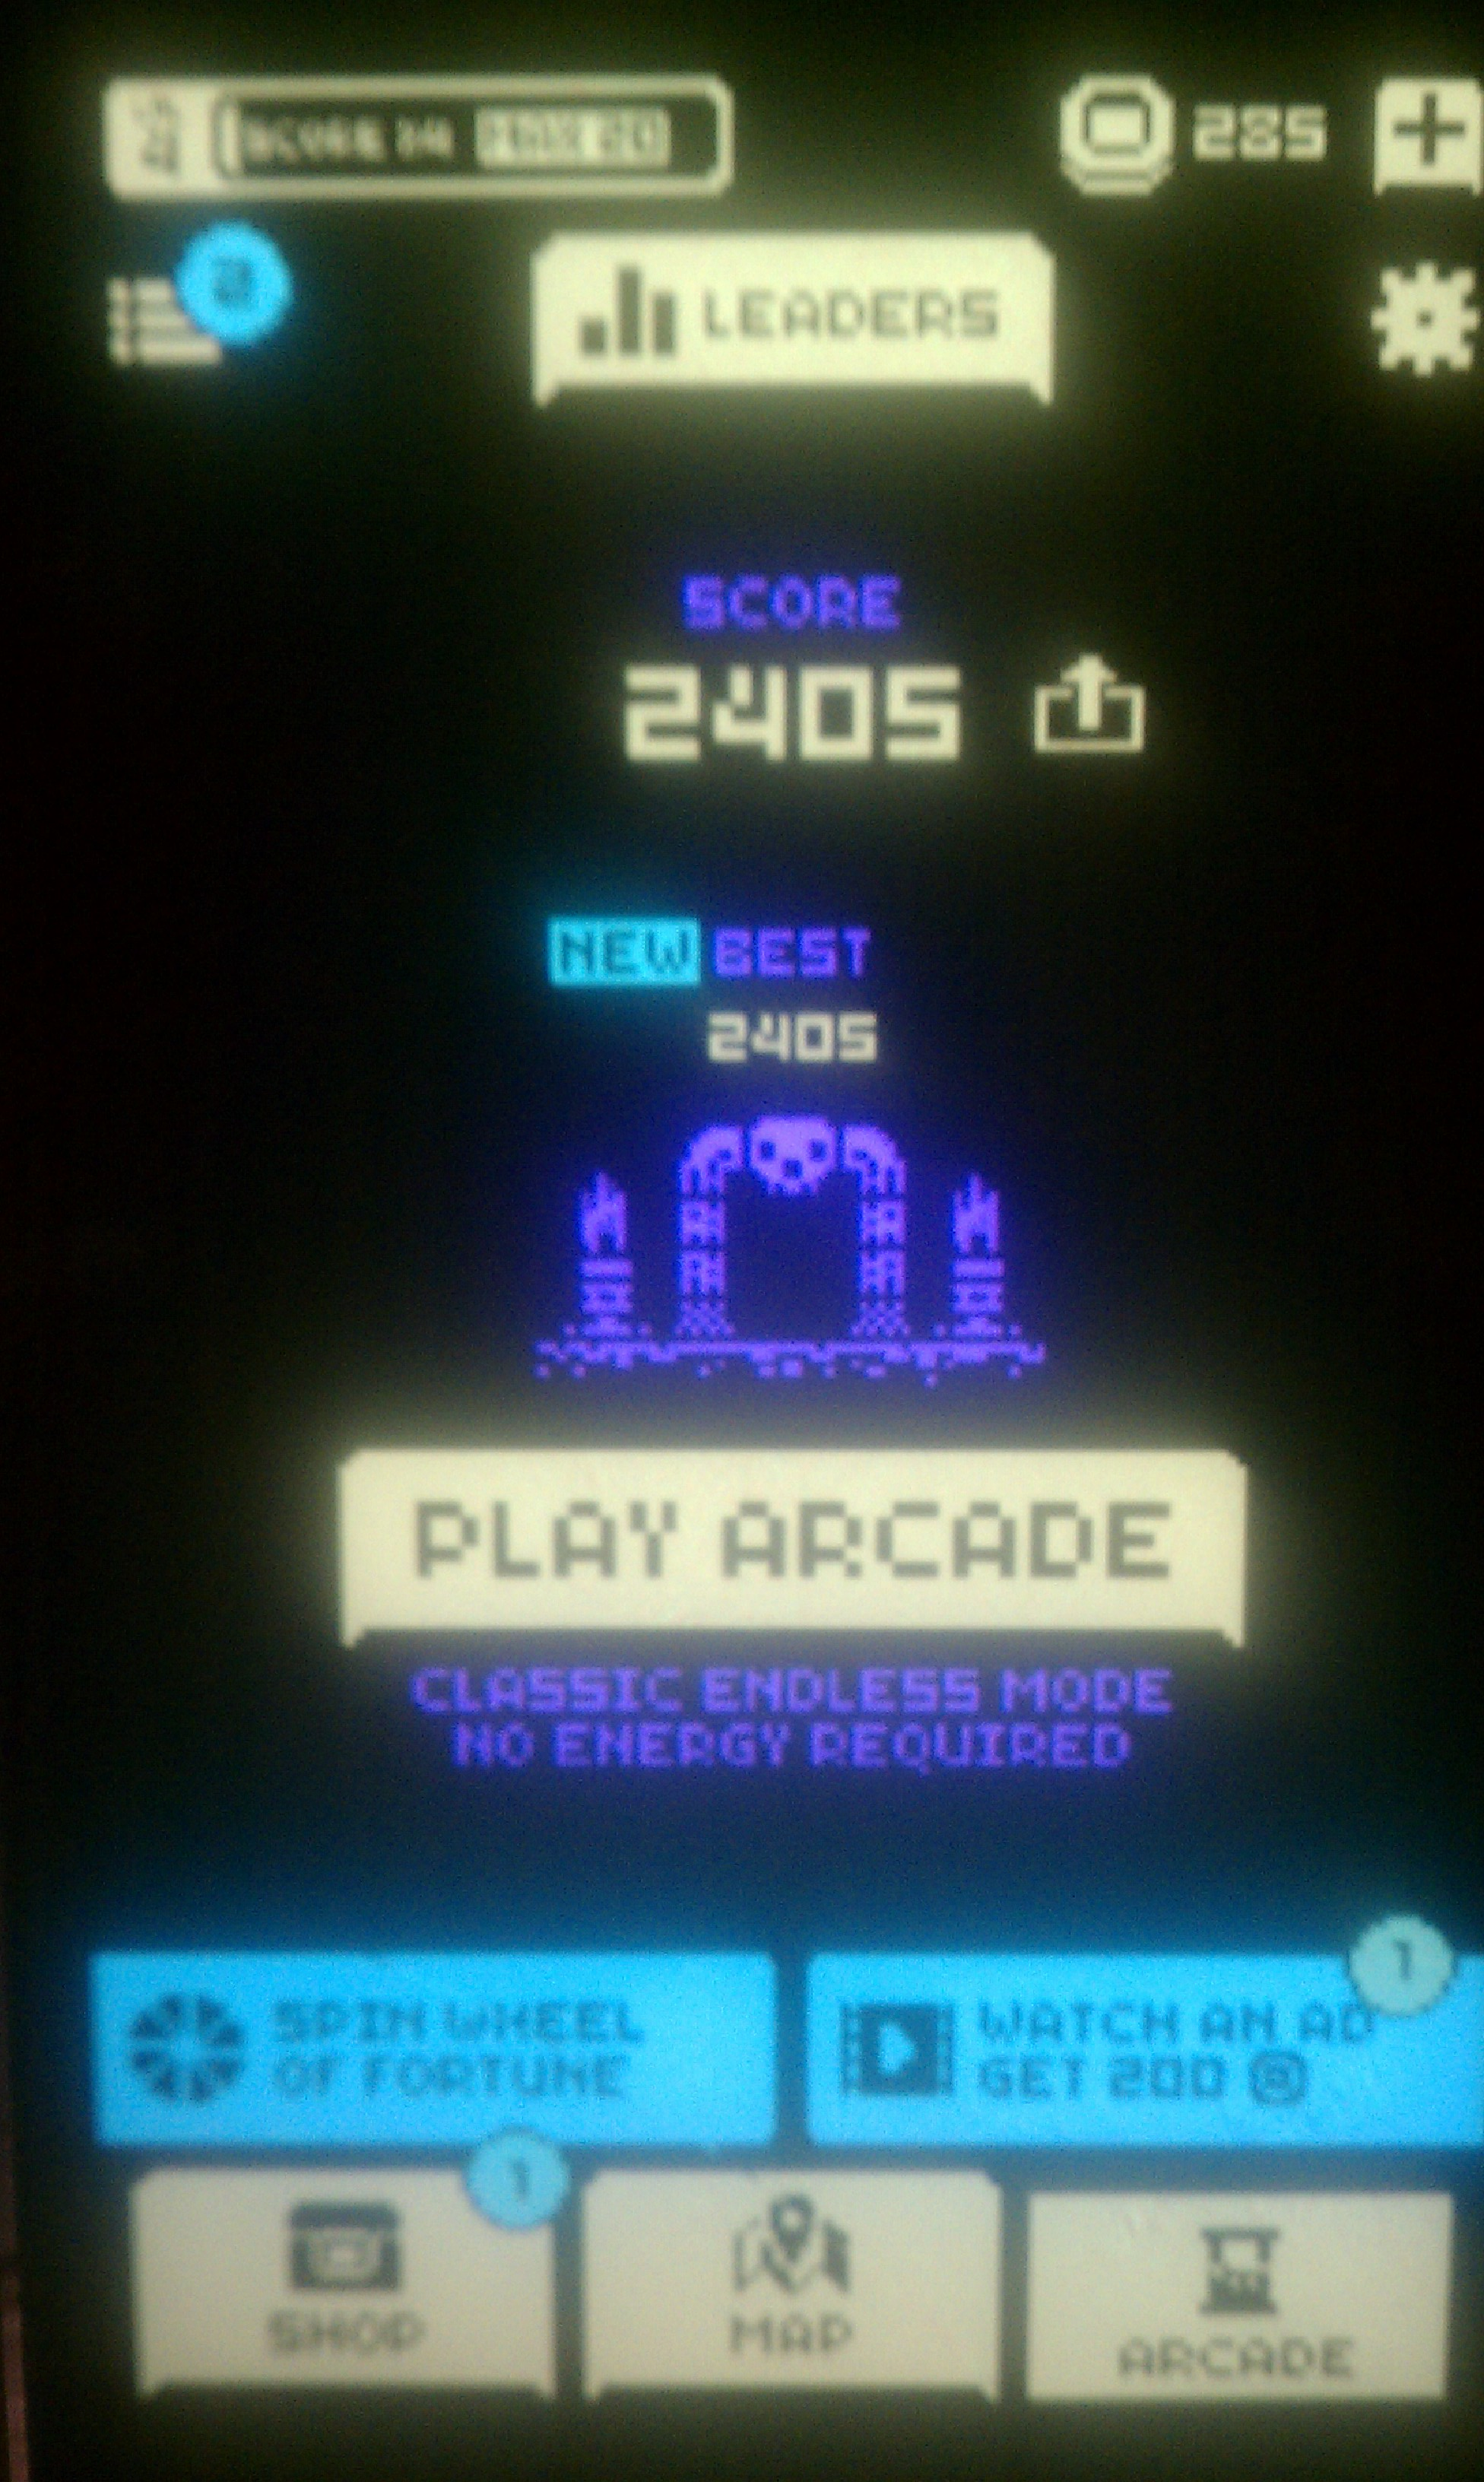 S.BAZ: Tomb Of The Mask: Arcade [Any Powerup Or Mask/ Any Level] (Android) 2,405 points on 2018-07-23 15:47:02